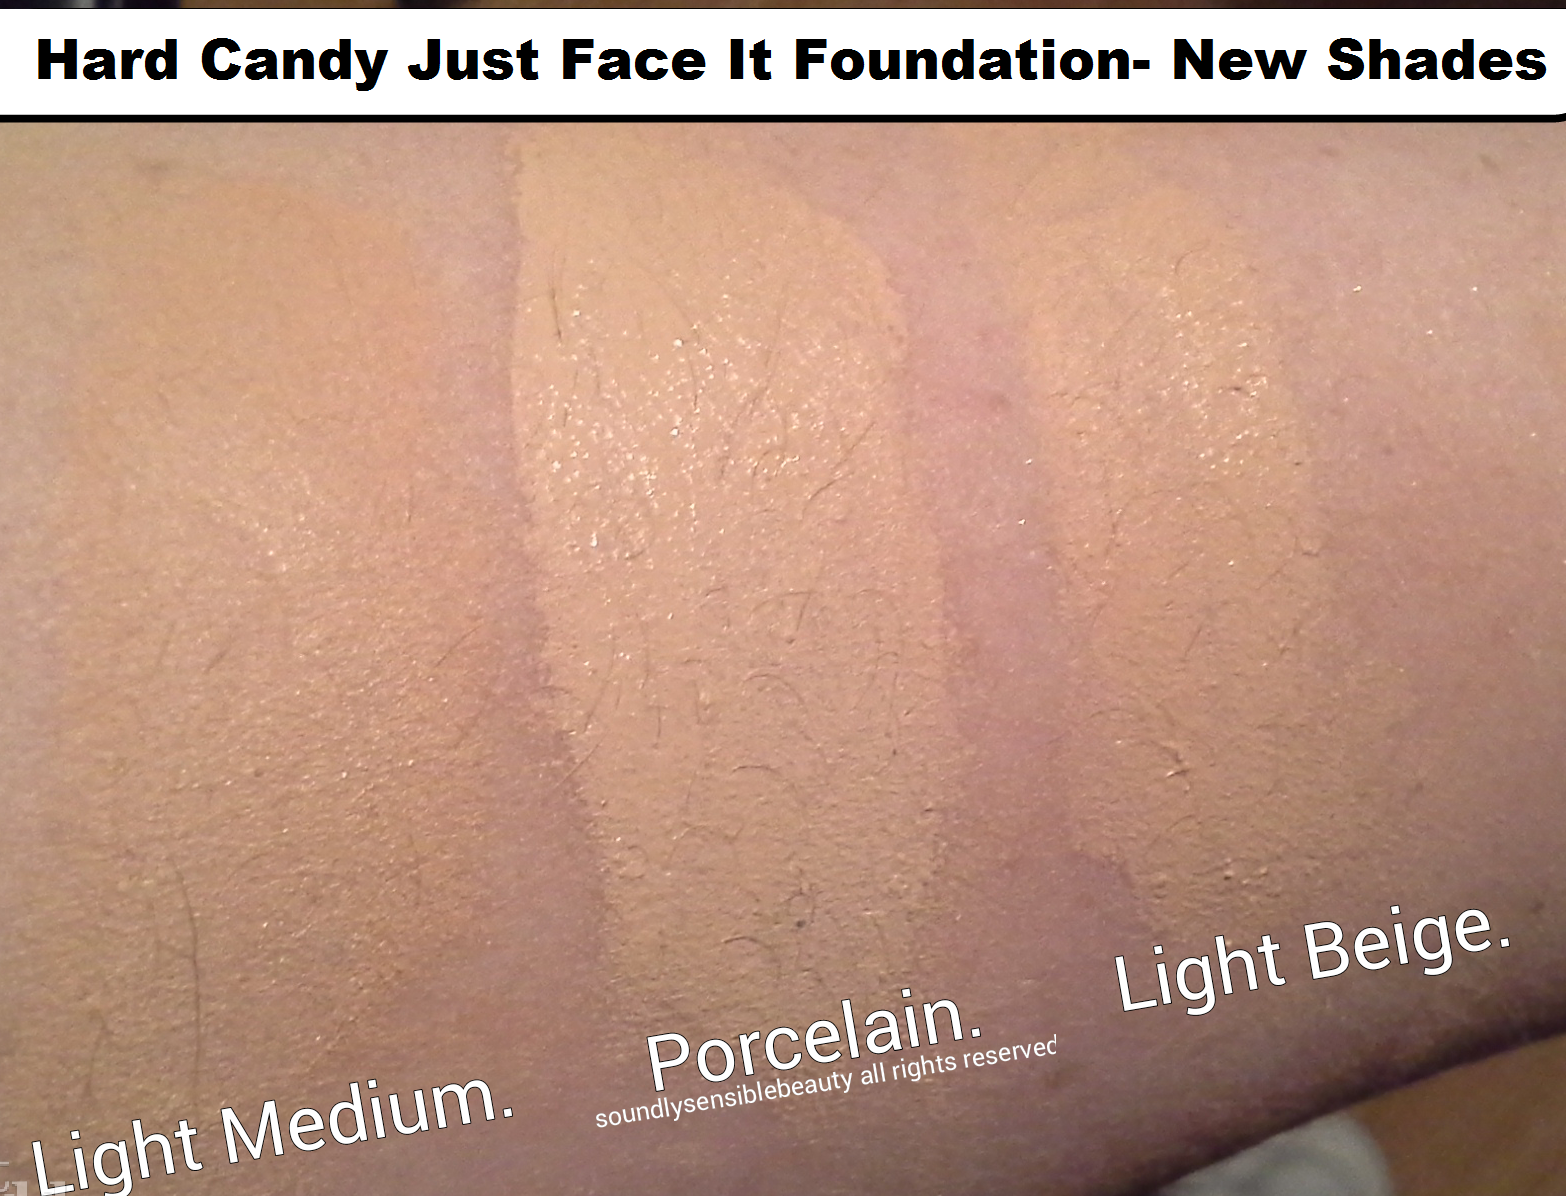 Hard Candy Just Face It Foundation 4-in-1, Review & Swatches of New Shades Light/Medium, Porcelain & Light Beige